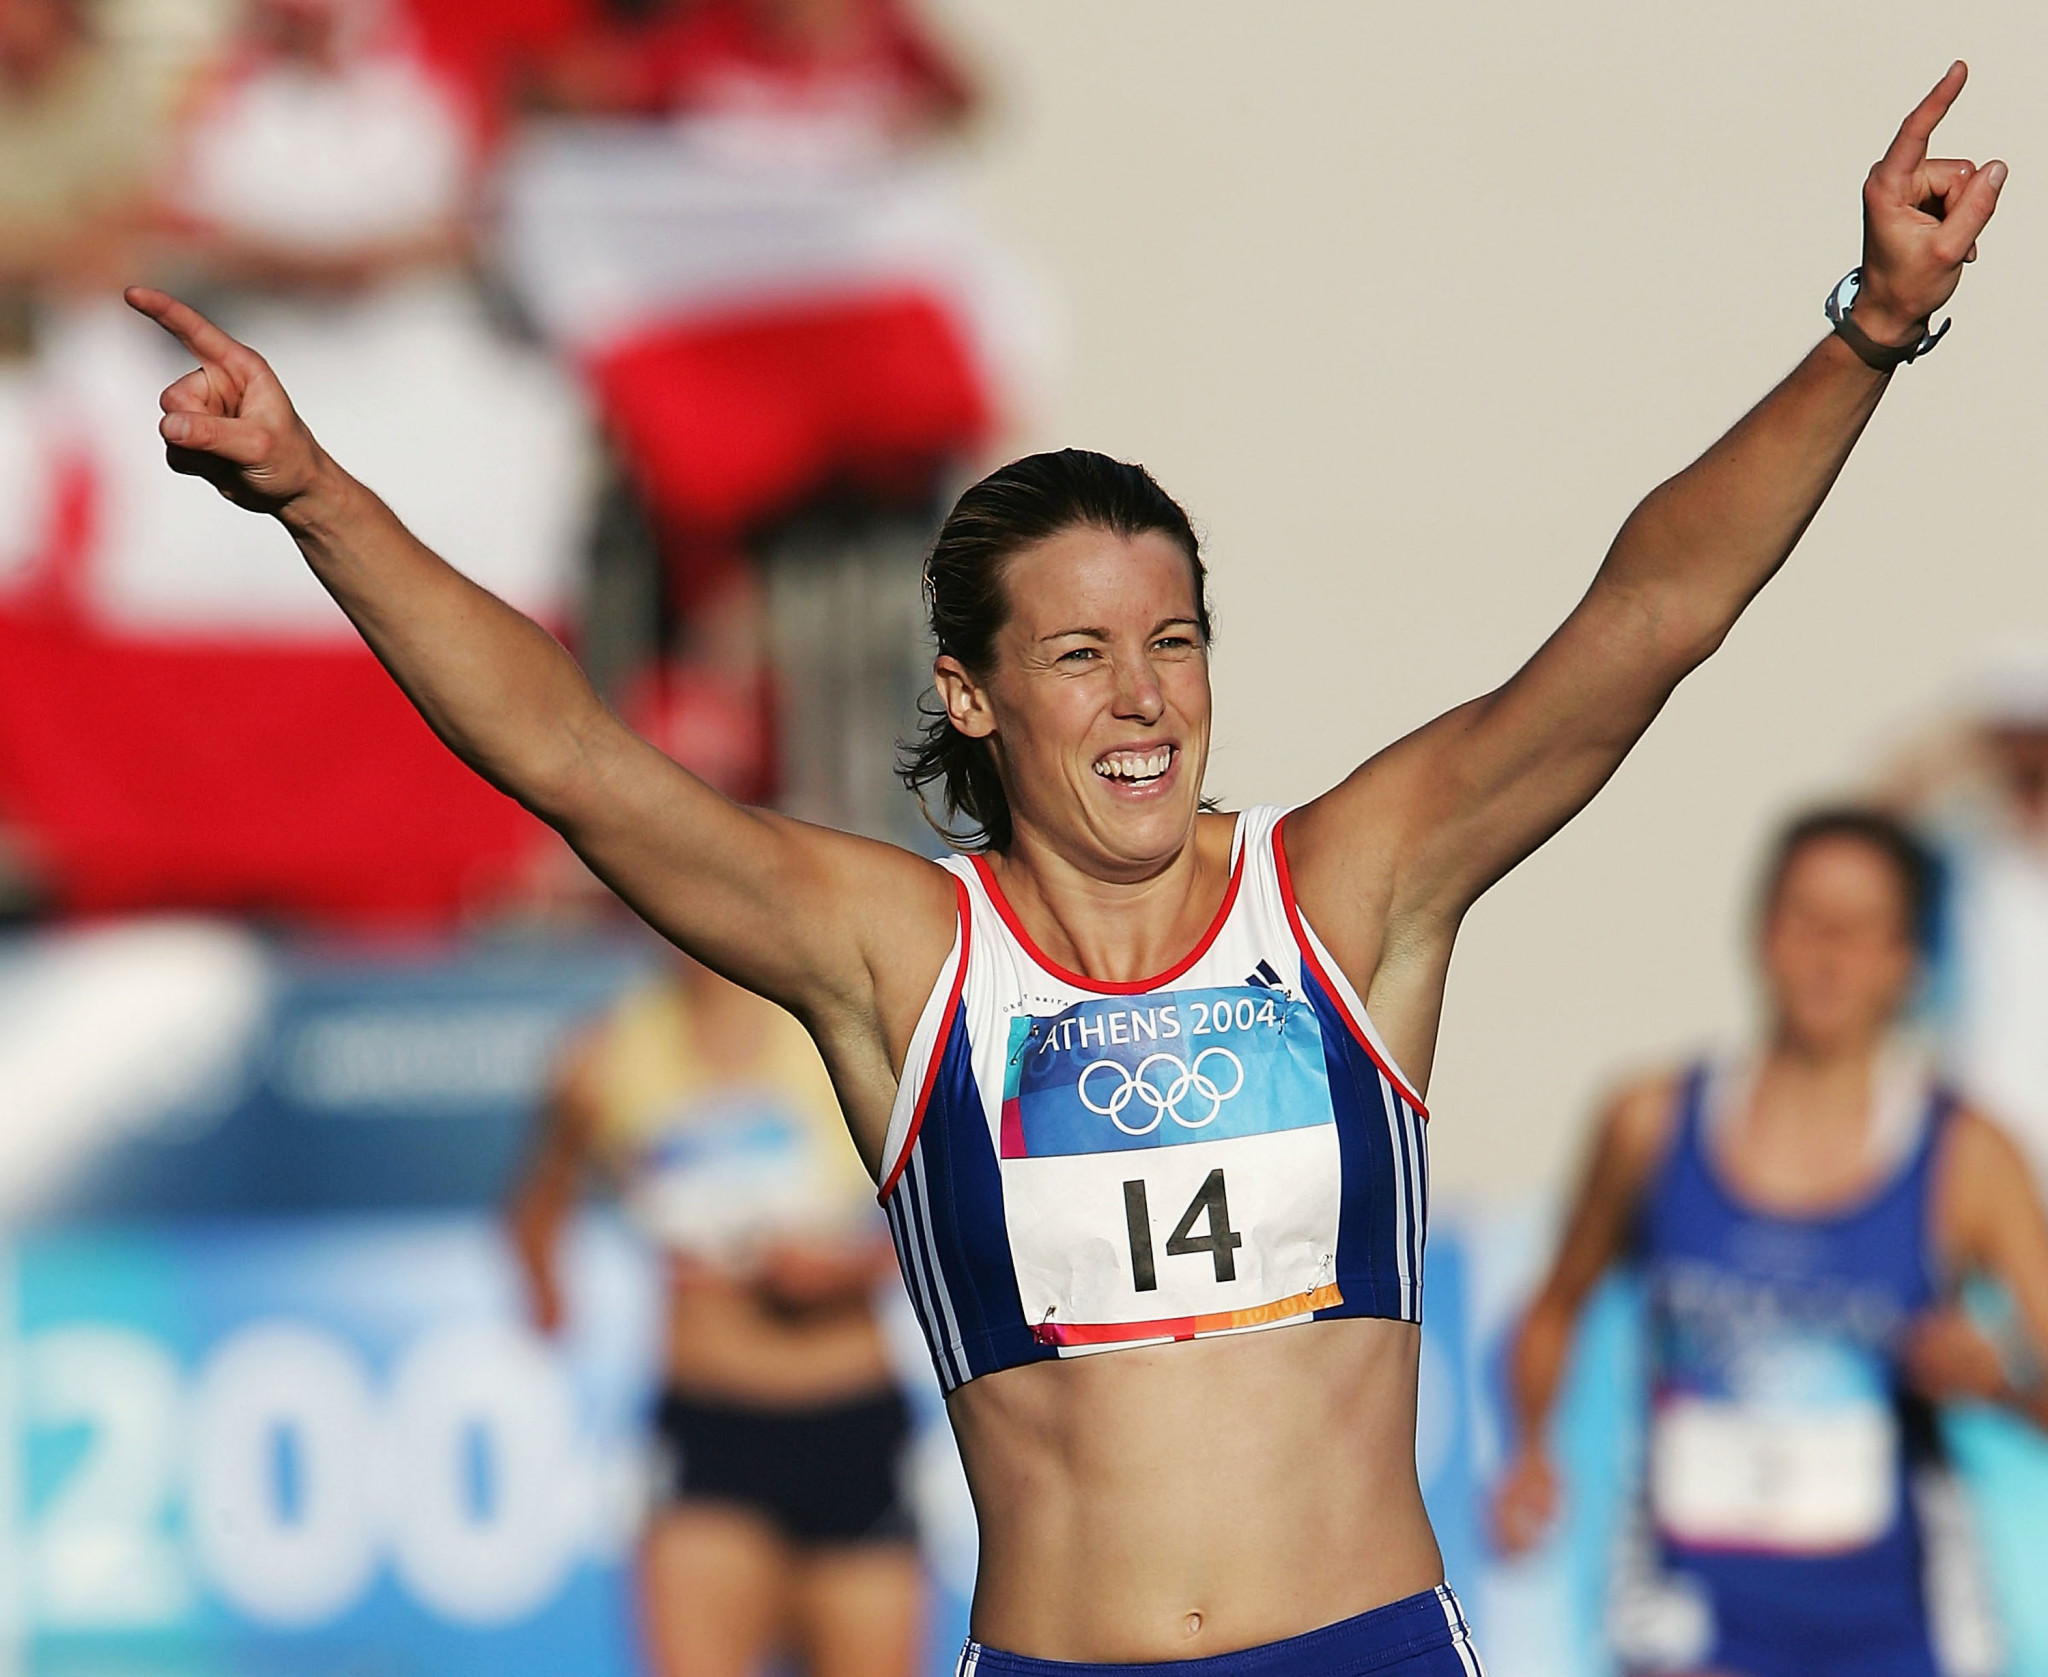 Georgina Harland has enjoyed Olympic success as an athlete, winning bronze in the women's modern pentathlon event at Athens 2004 ©Getty Images